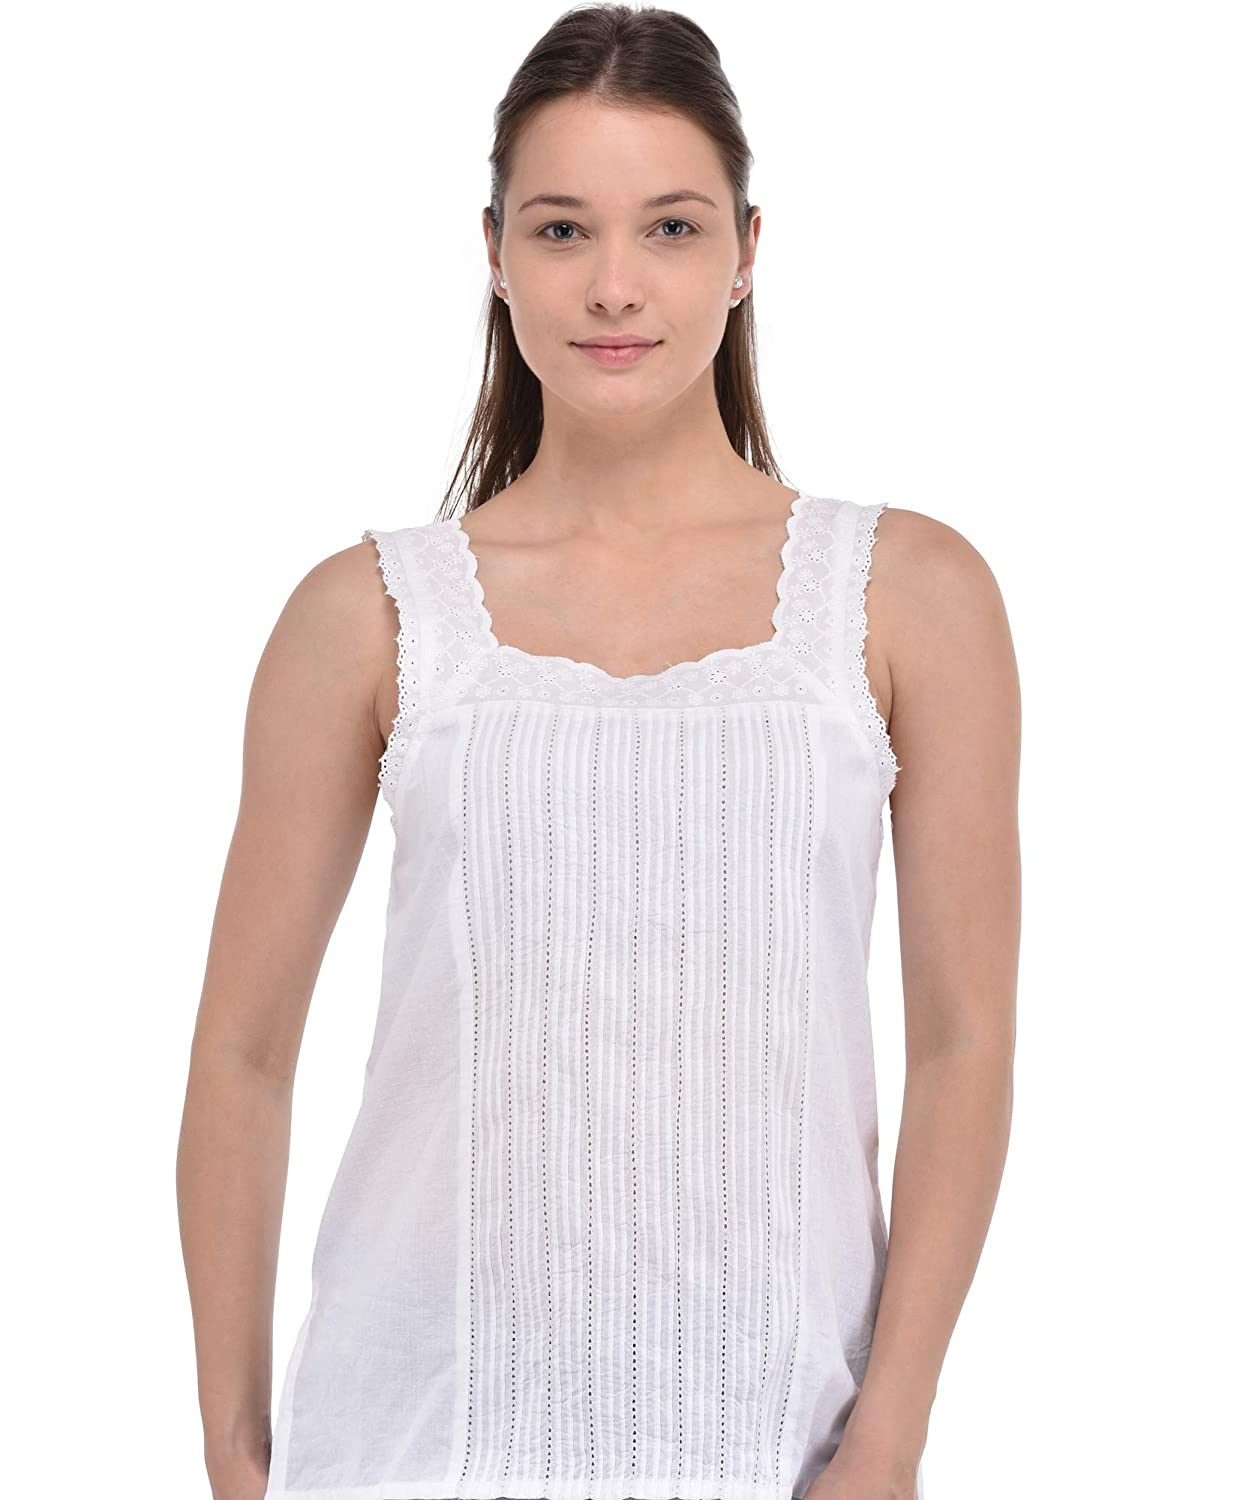 Cotton Lane Women's White Top   Elegant White Top for Ladies